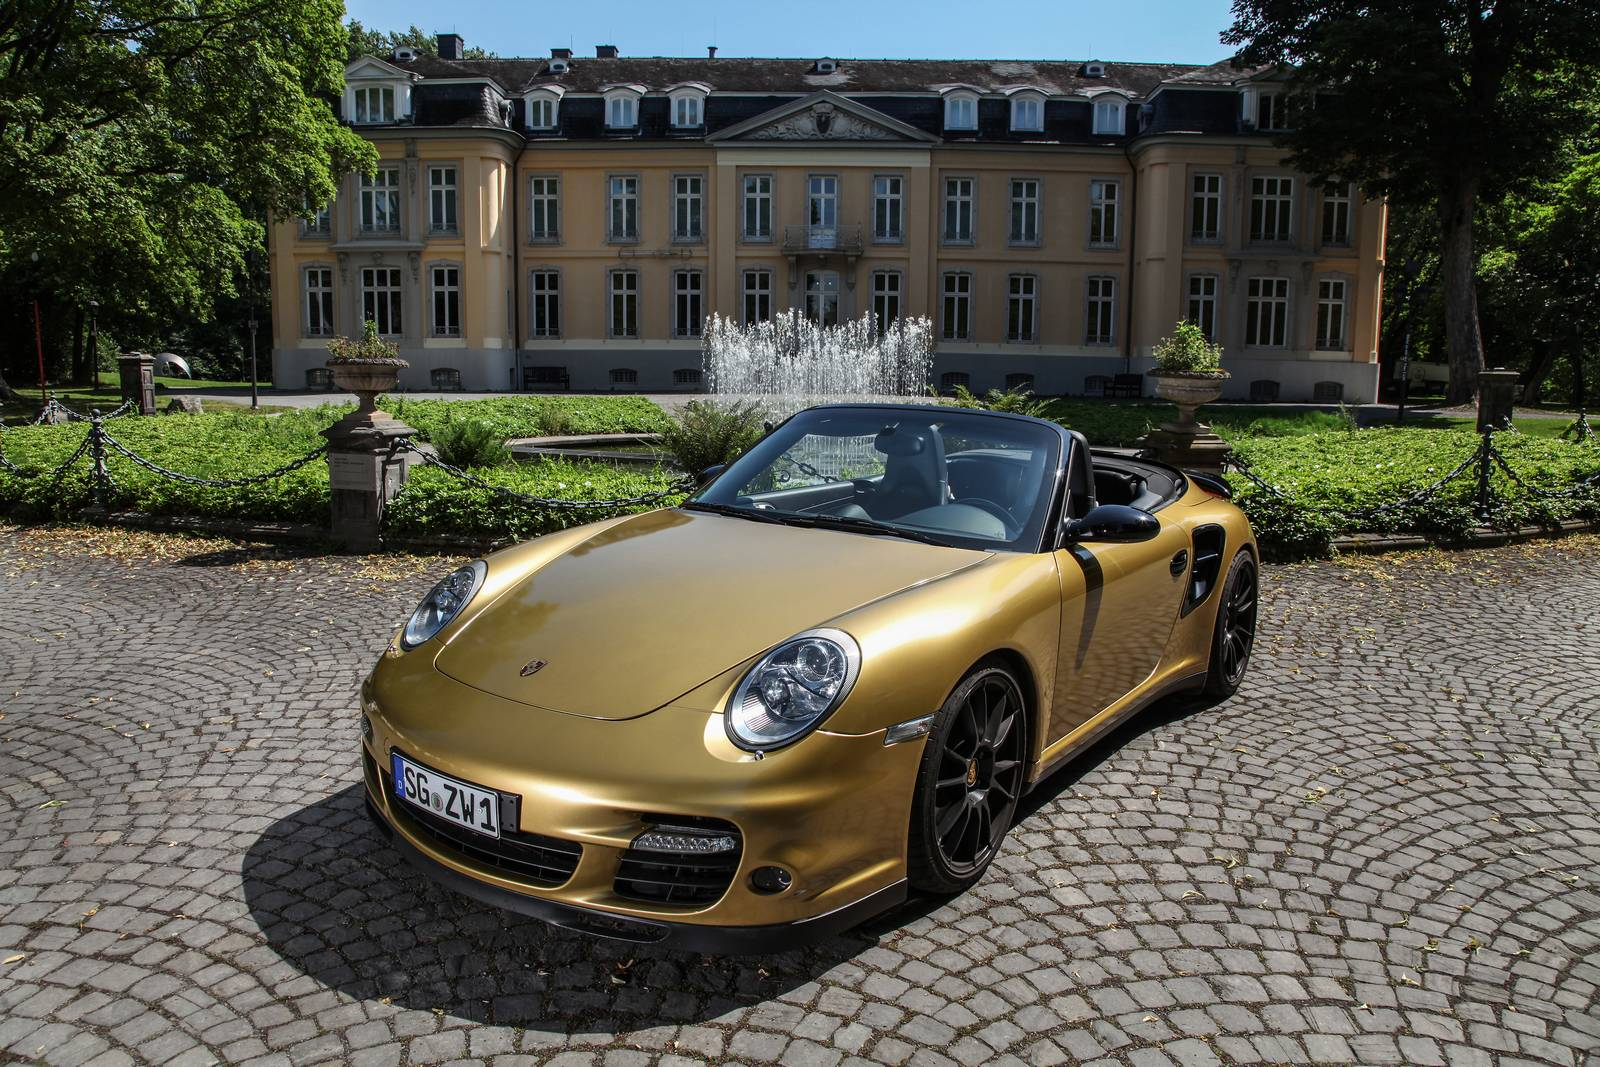 official 840hp porsche 911 turbo cabrio by wimmer rs gtspirit. Black Bedroom Furniture Sets. Home Design Ideas